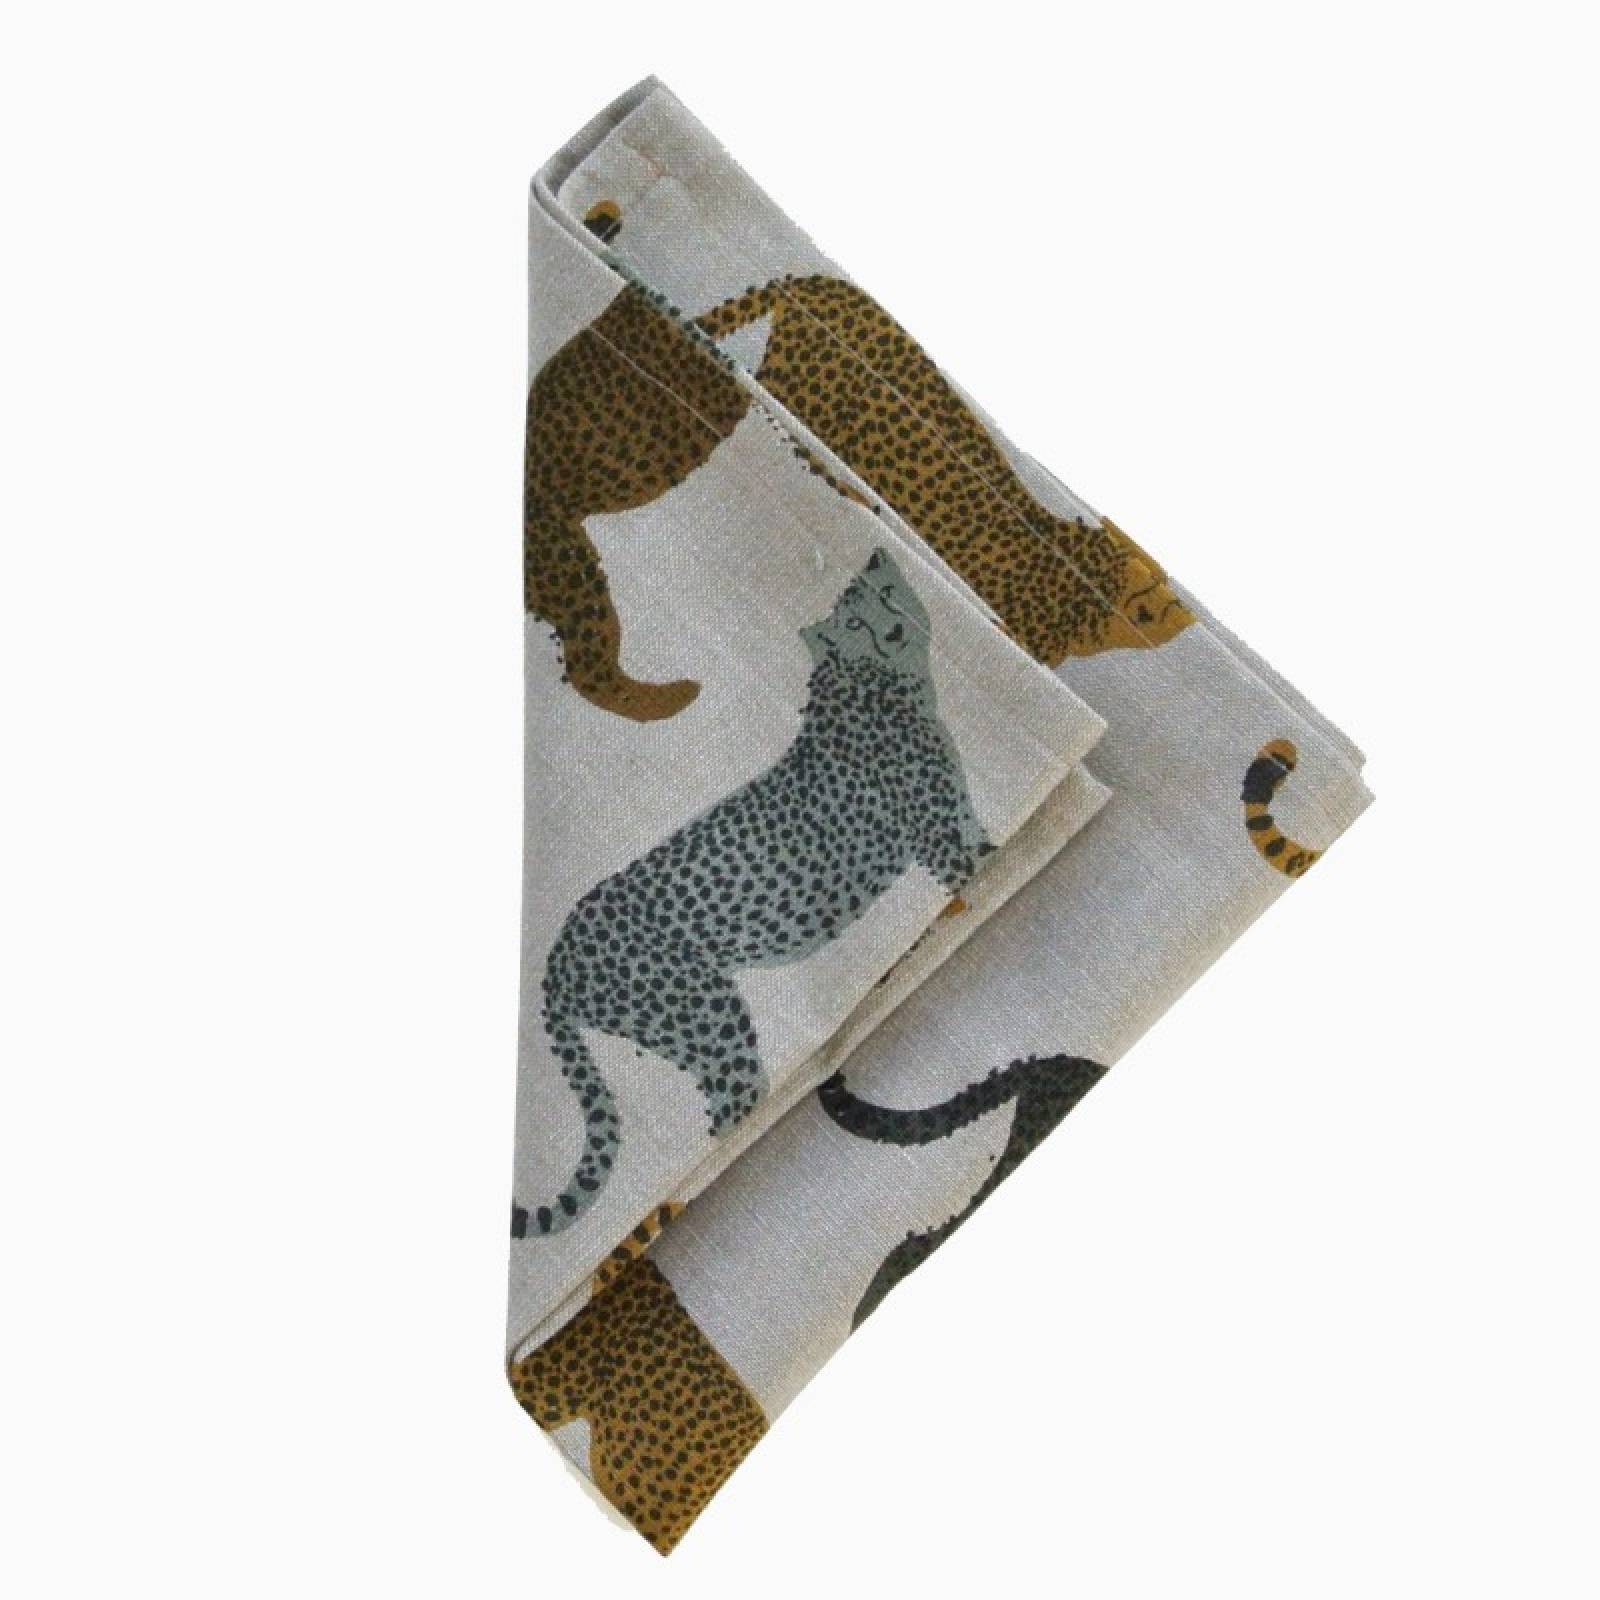 Set Of 4 Recycled Cotton Napkins In Cheetah Print